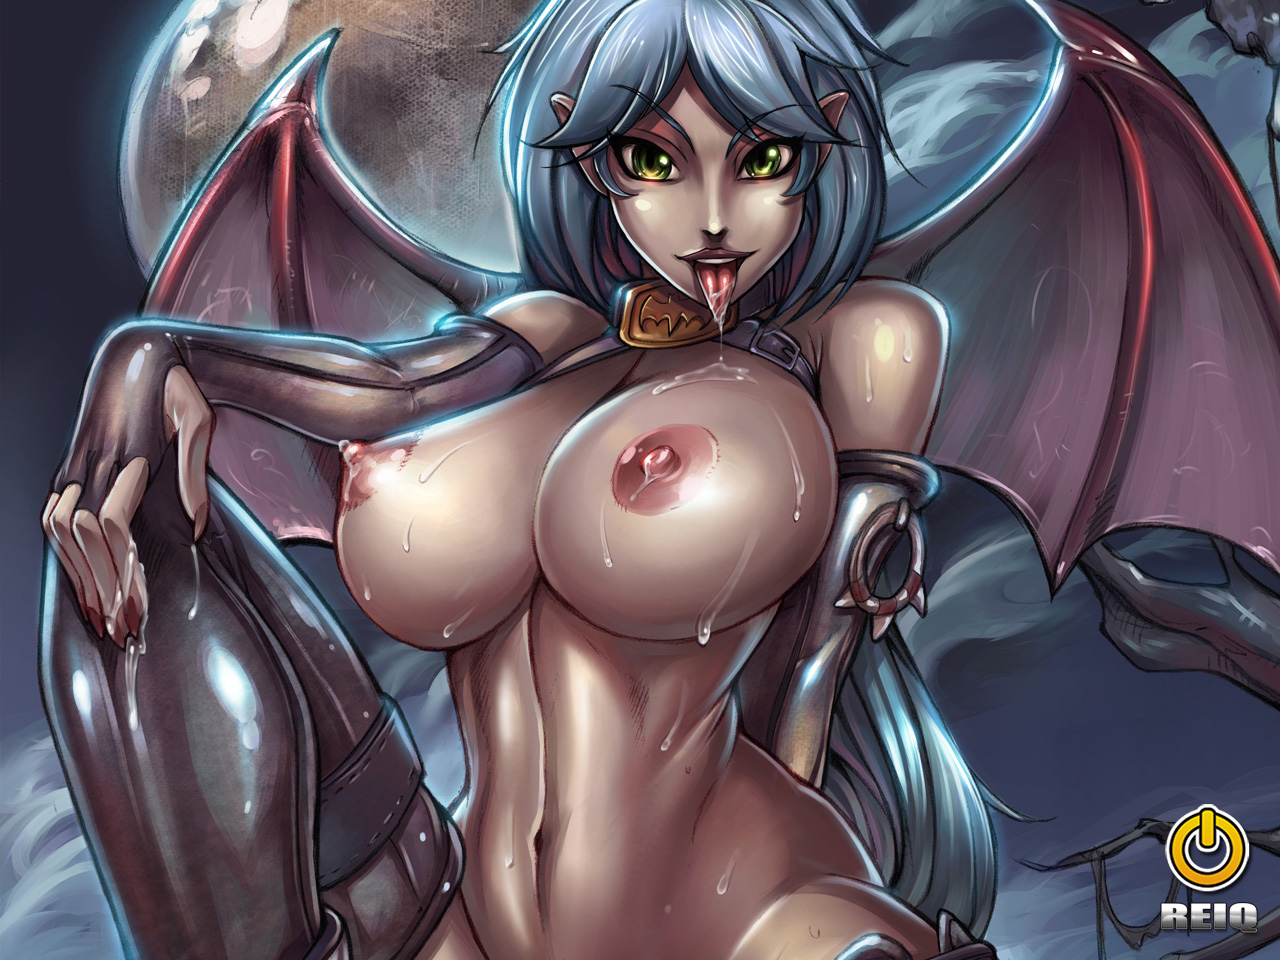 Hd anime succubus porn pictures adult woman